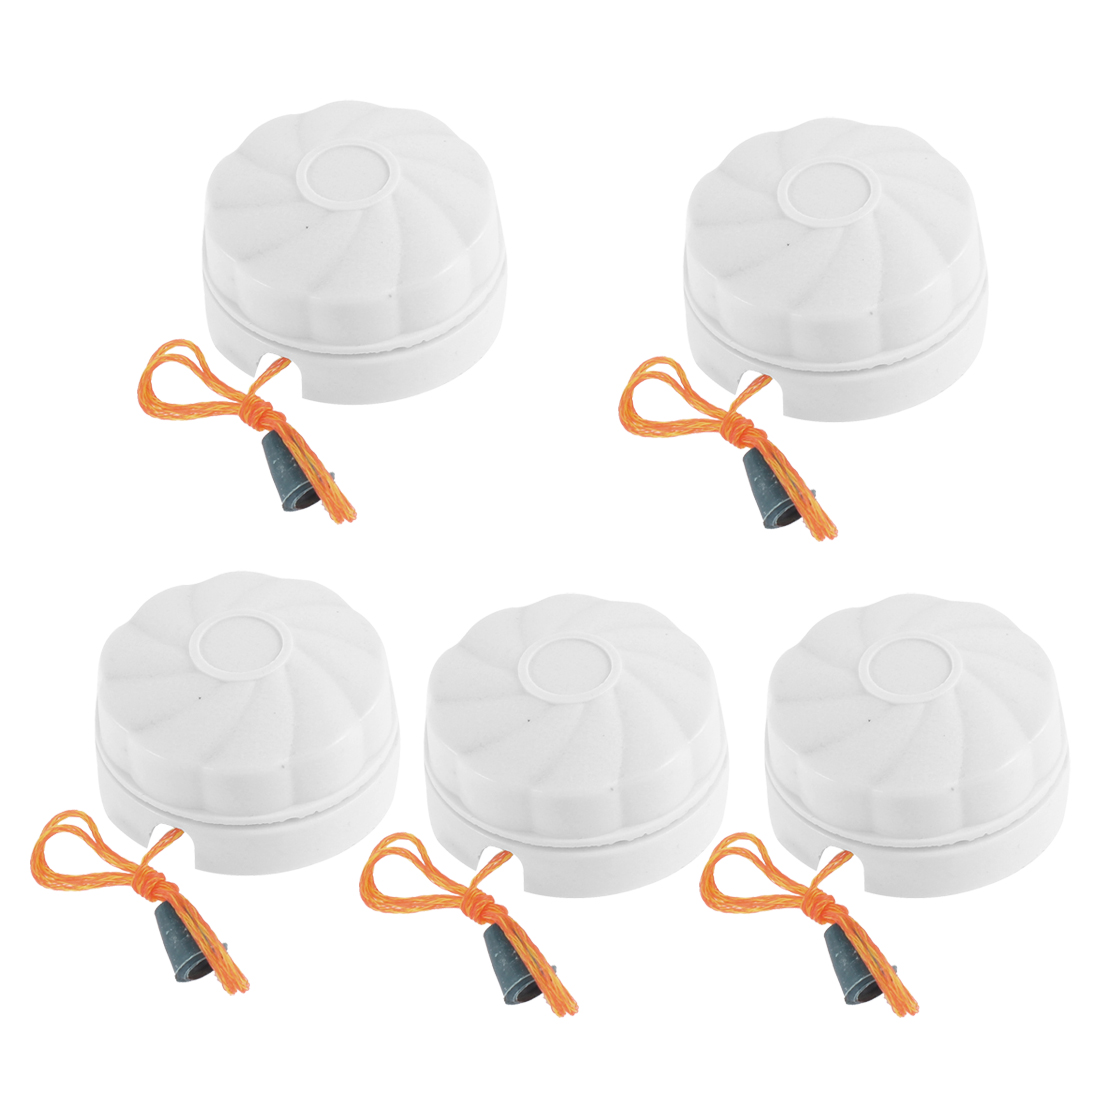 AC 250V 6A Round Shaped Bathroom Fan String Light Lamp Pull Cord Switch White 5 Pcs